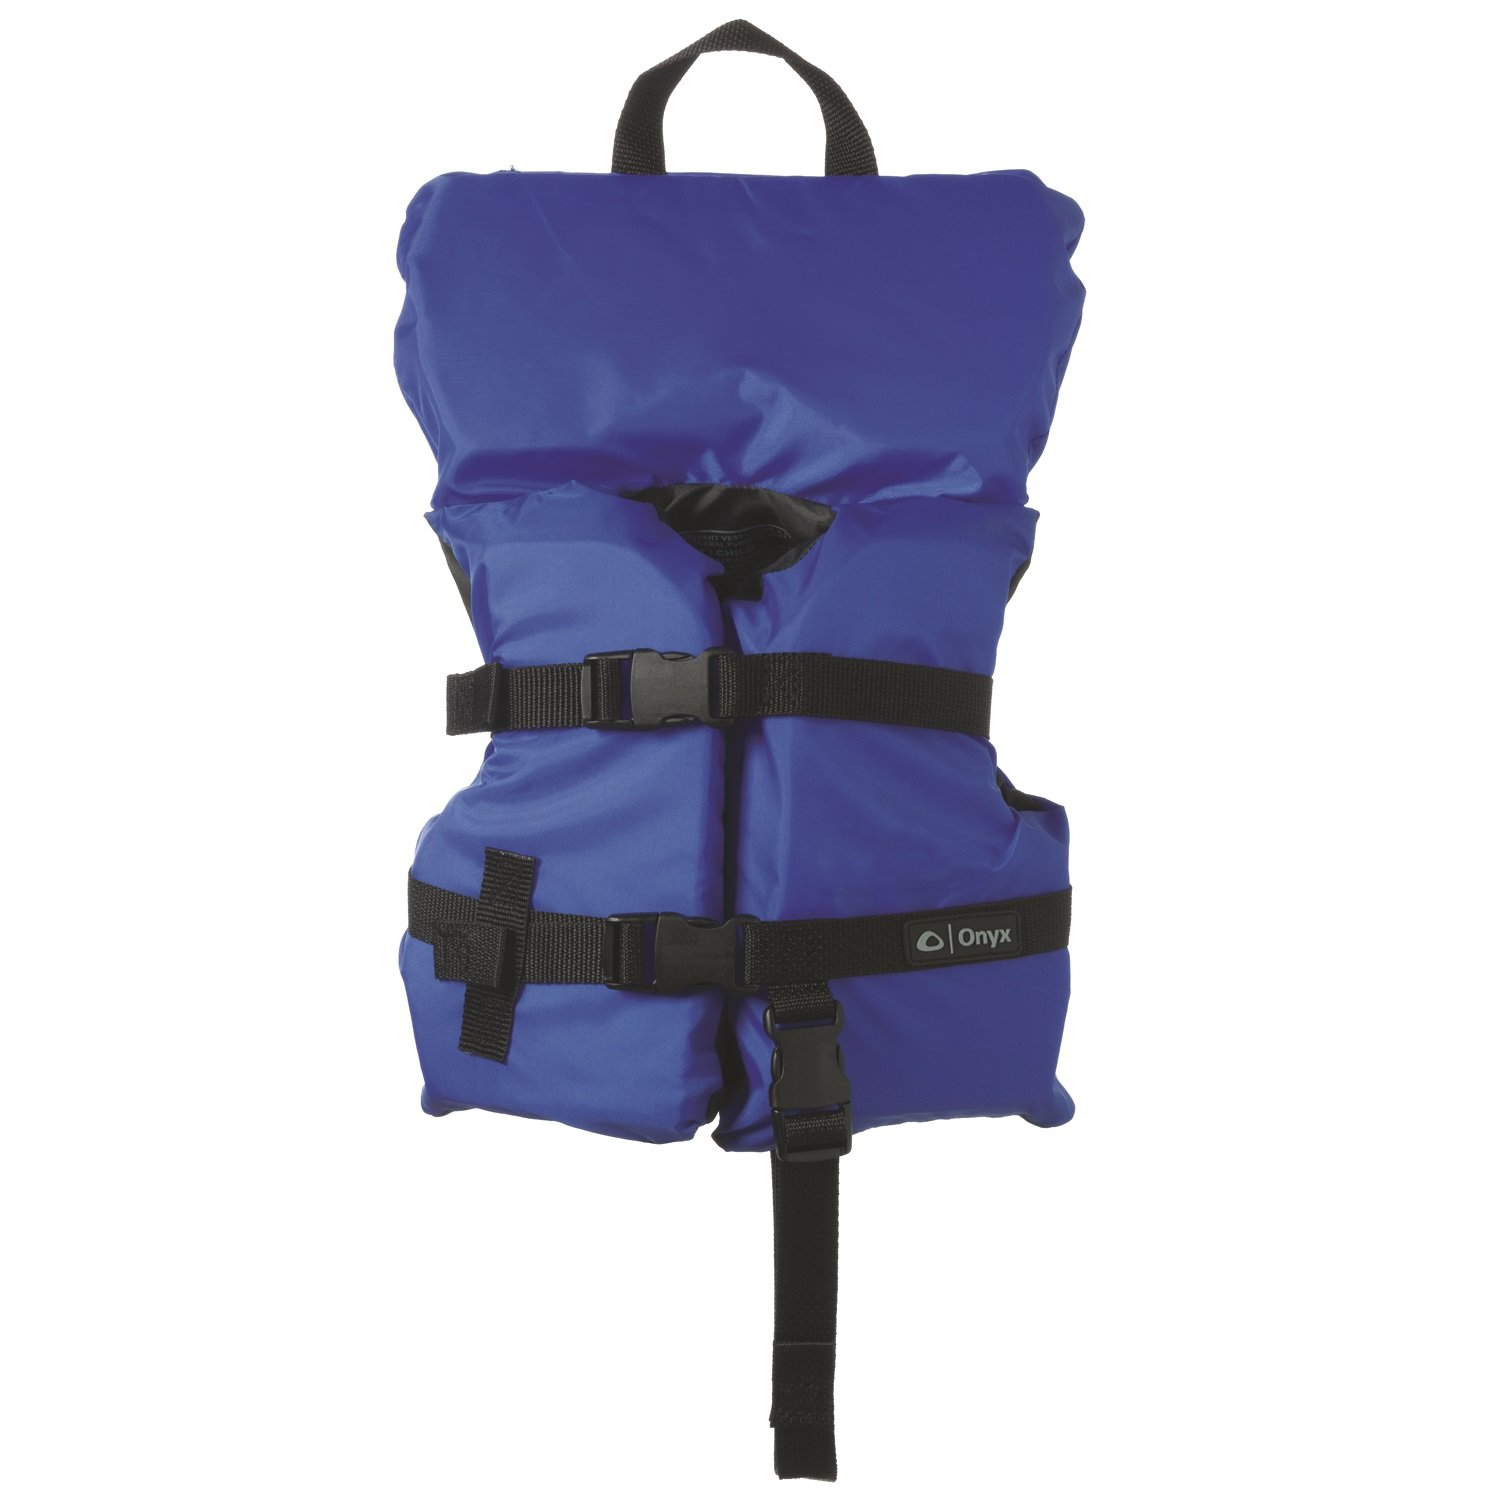 Full Throttle 3600-0132 Marine General Purpose Infant Life Vest with Quick Recovery Strap, Blue and Black Finish